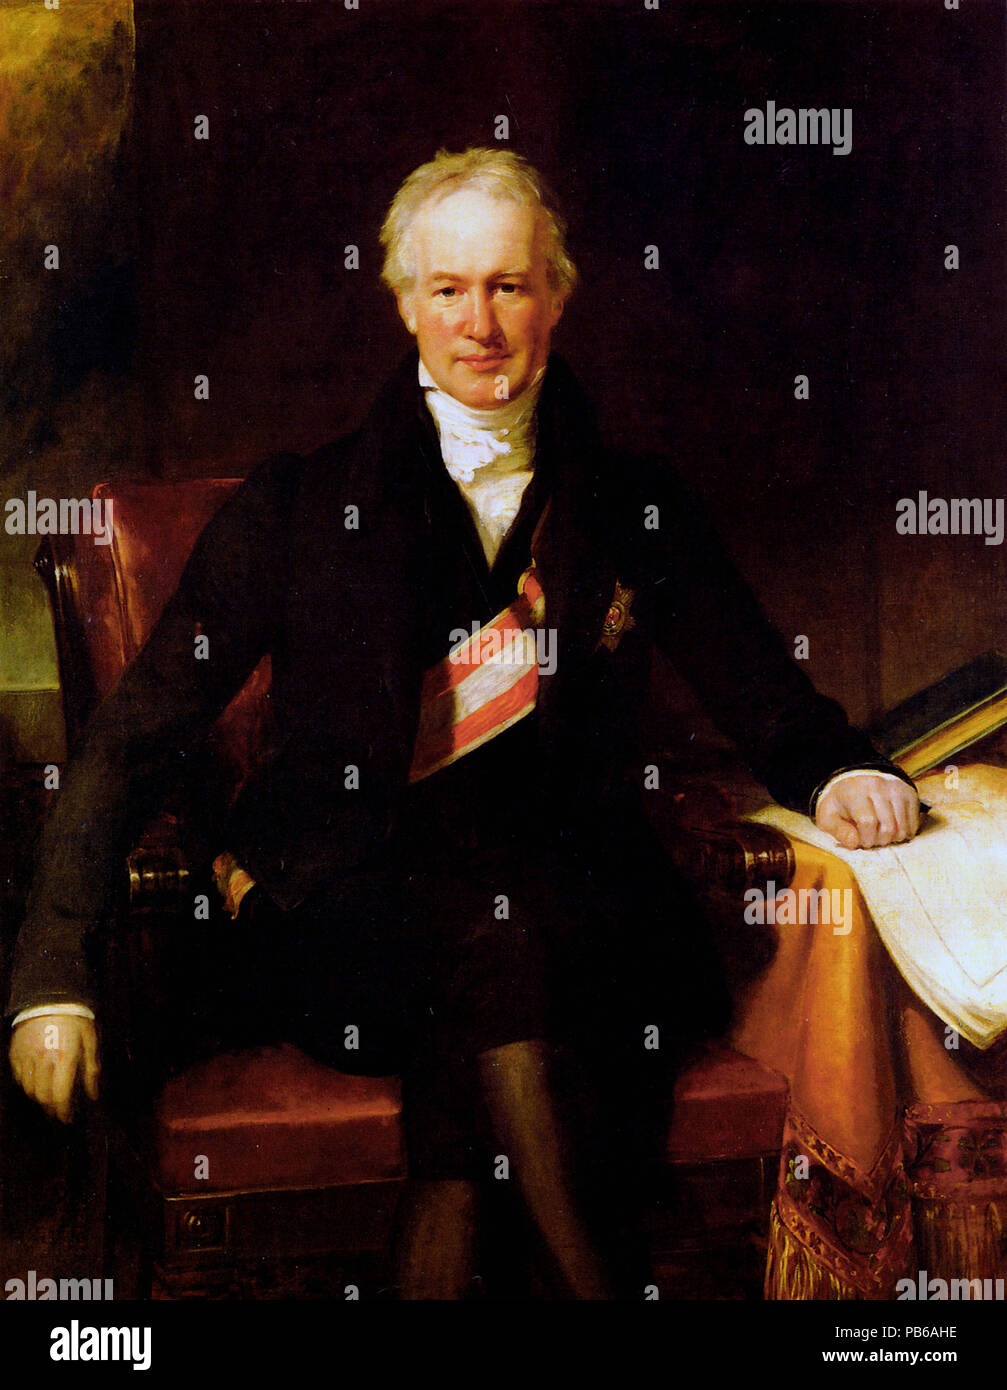 Alexander von Humboldt Photo Stock